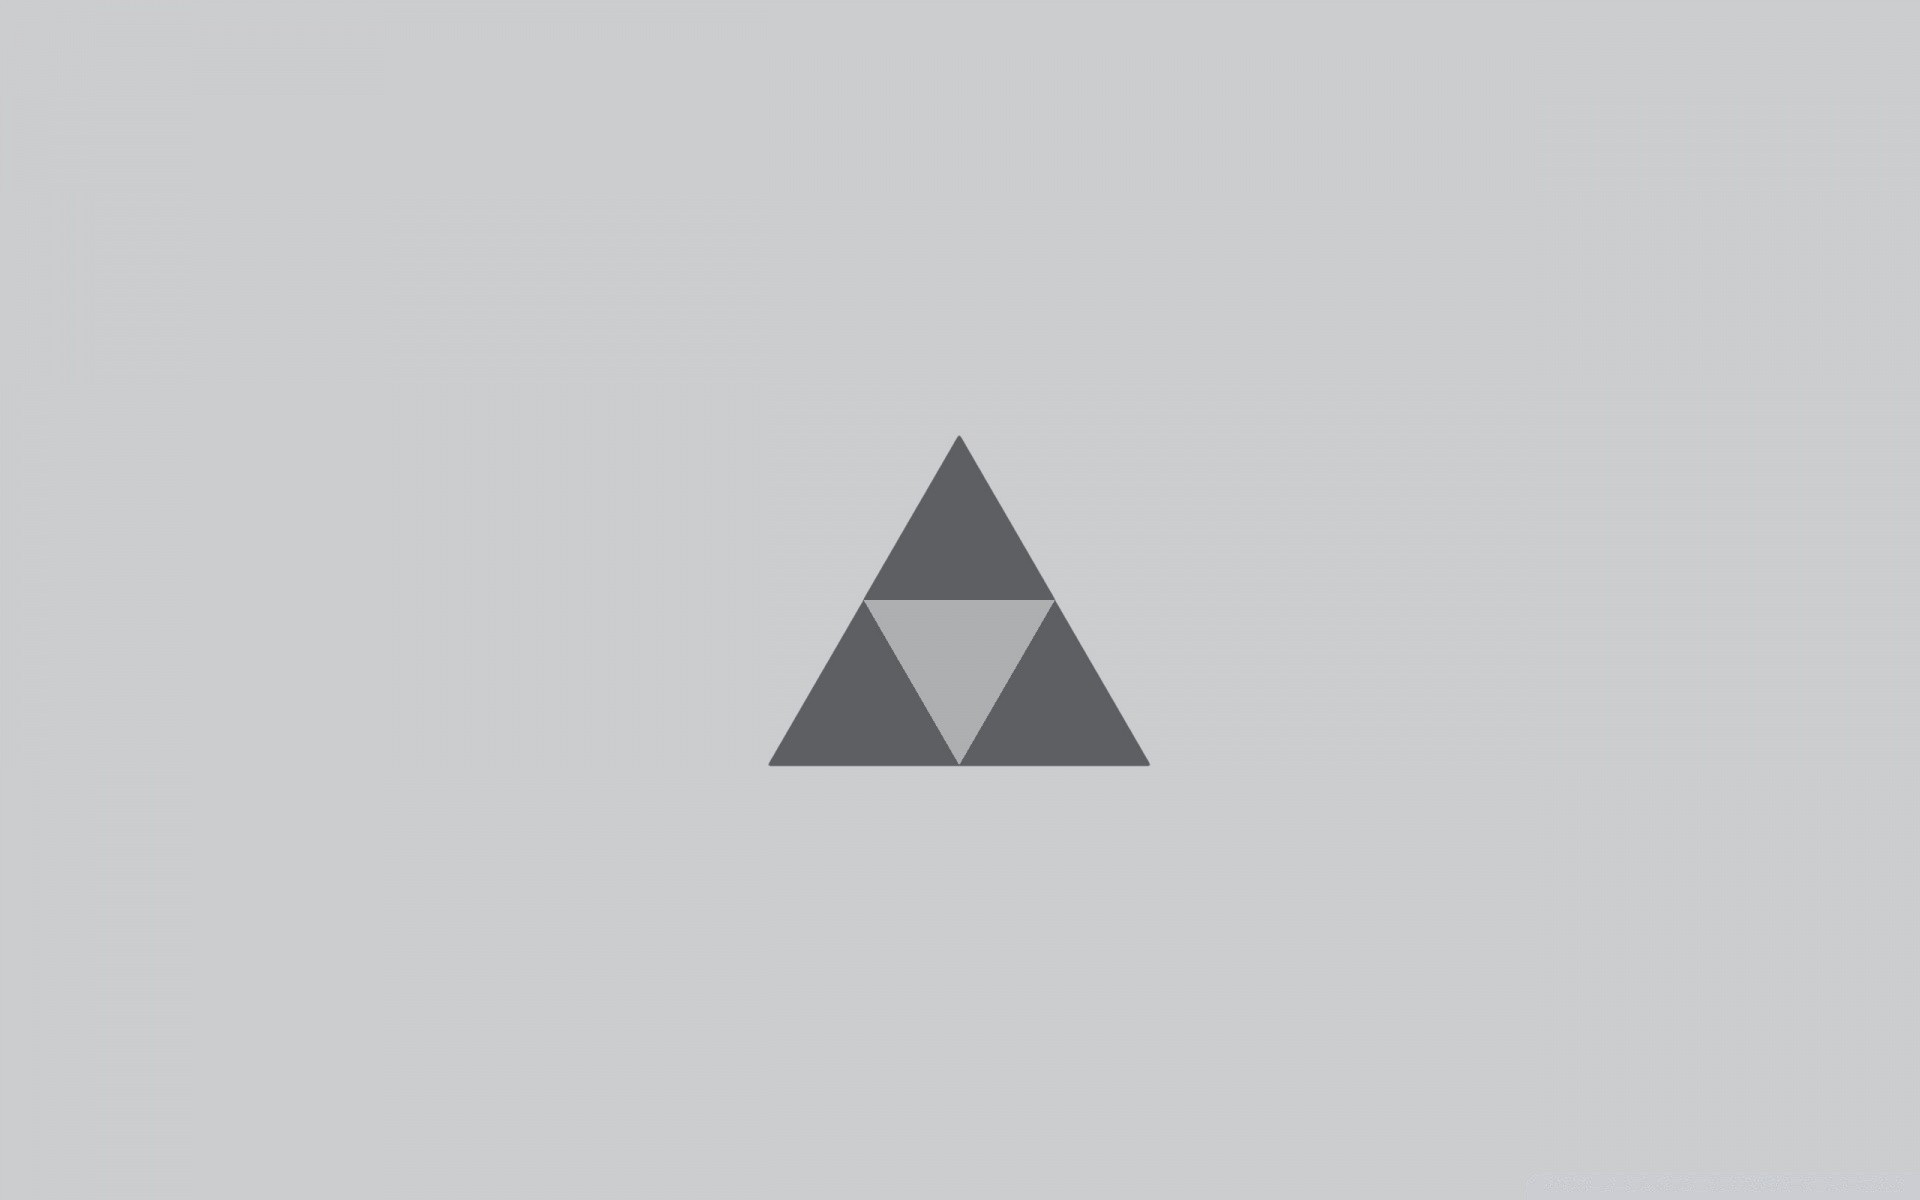 1920x1200 Triforce The Legend Of Zelda. Android Wallpapers For Free.